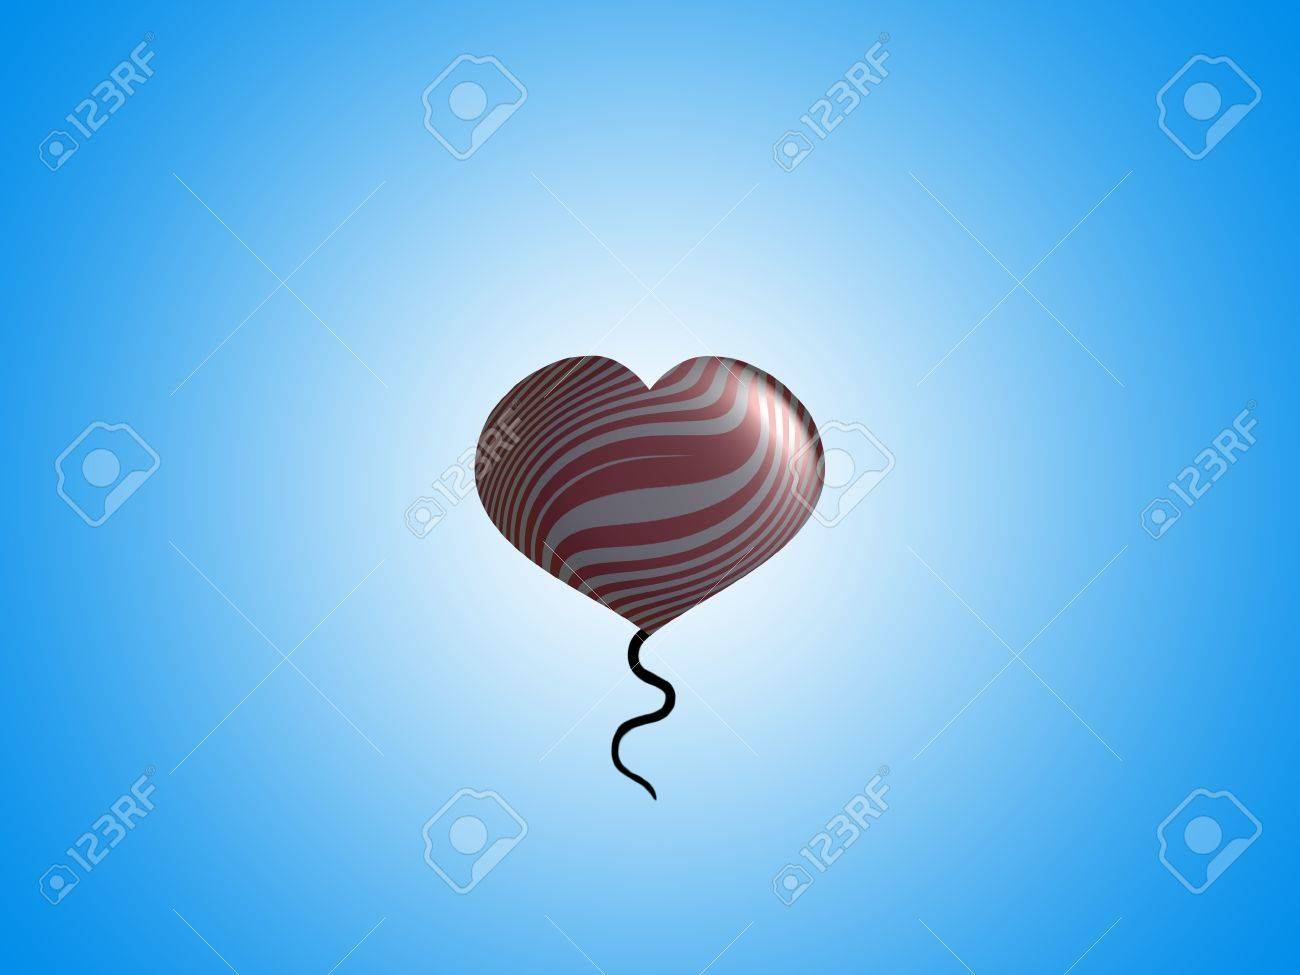 Romantic fancy floating balloon with space for text Stock Photo - 13792451